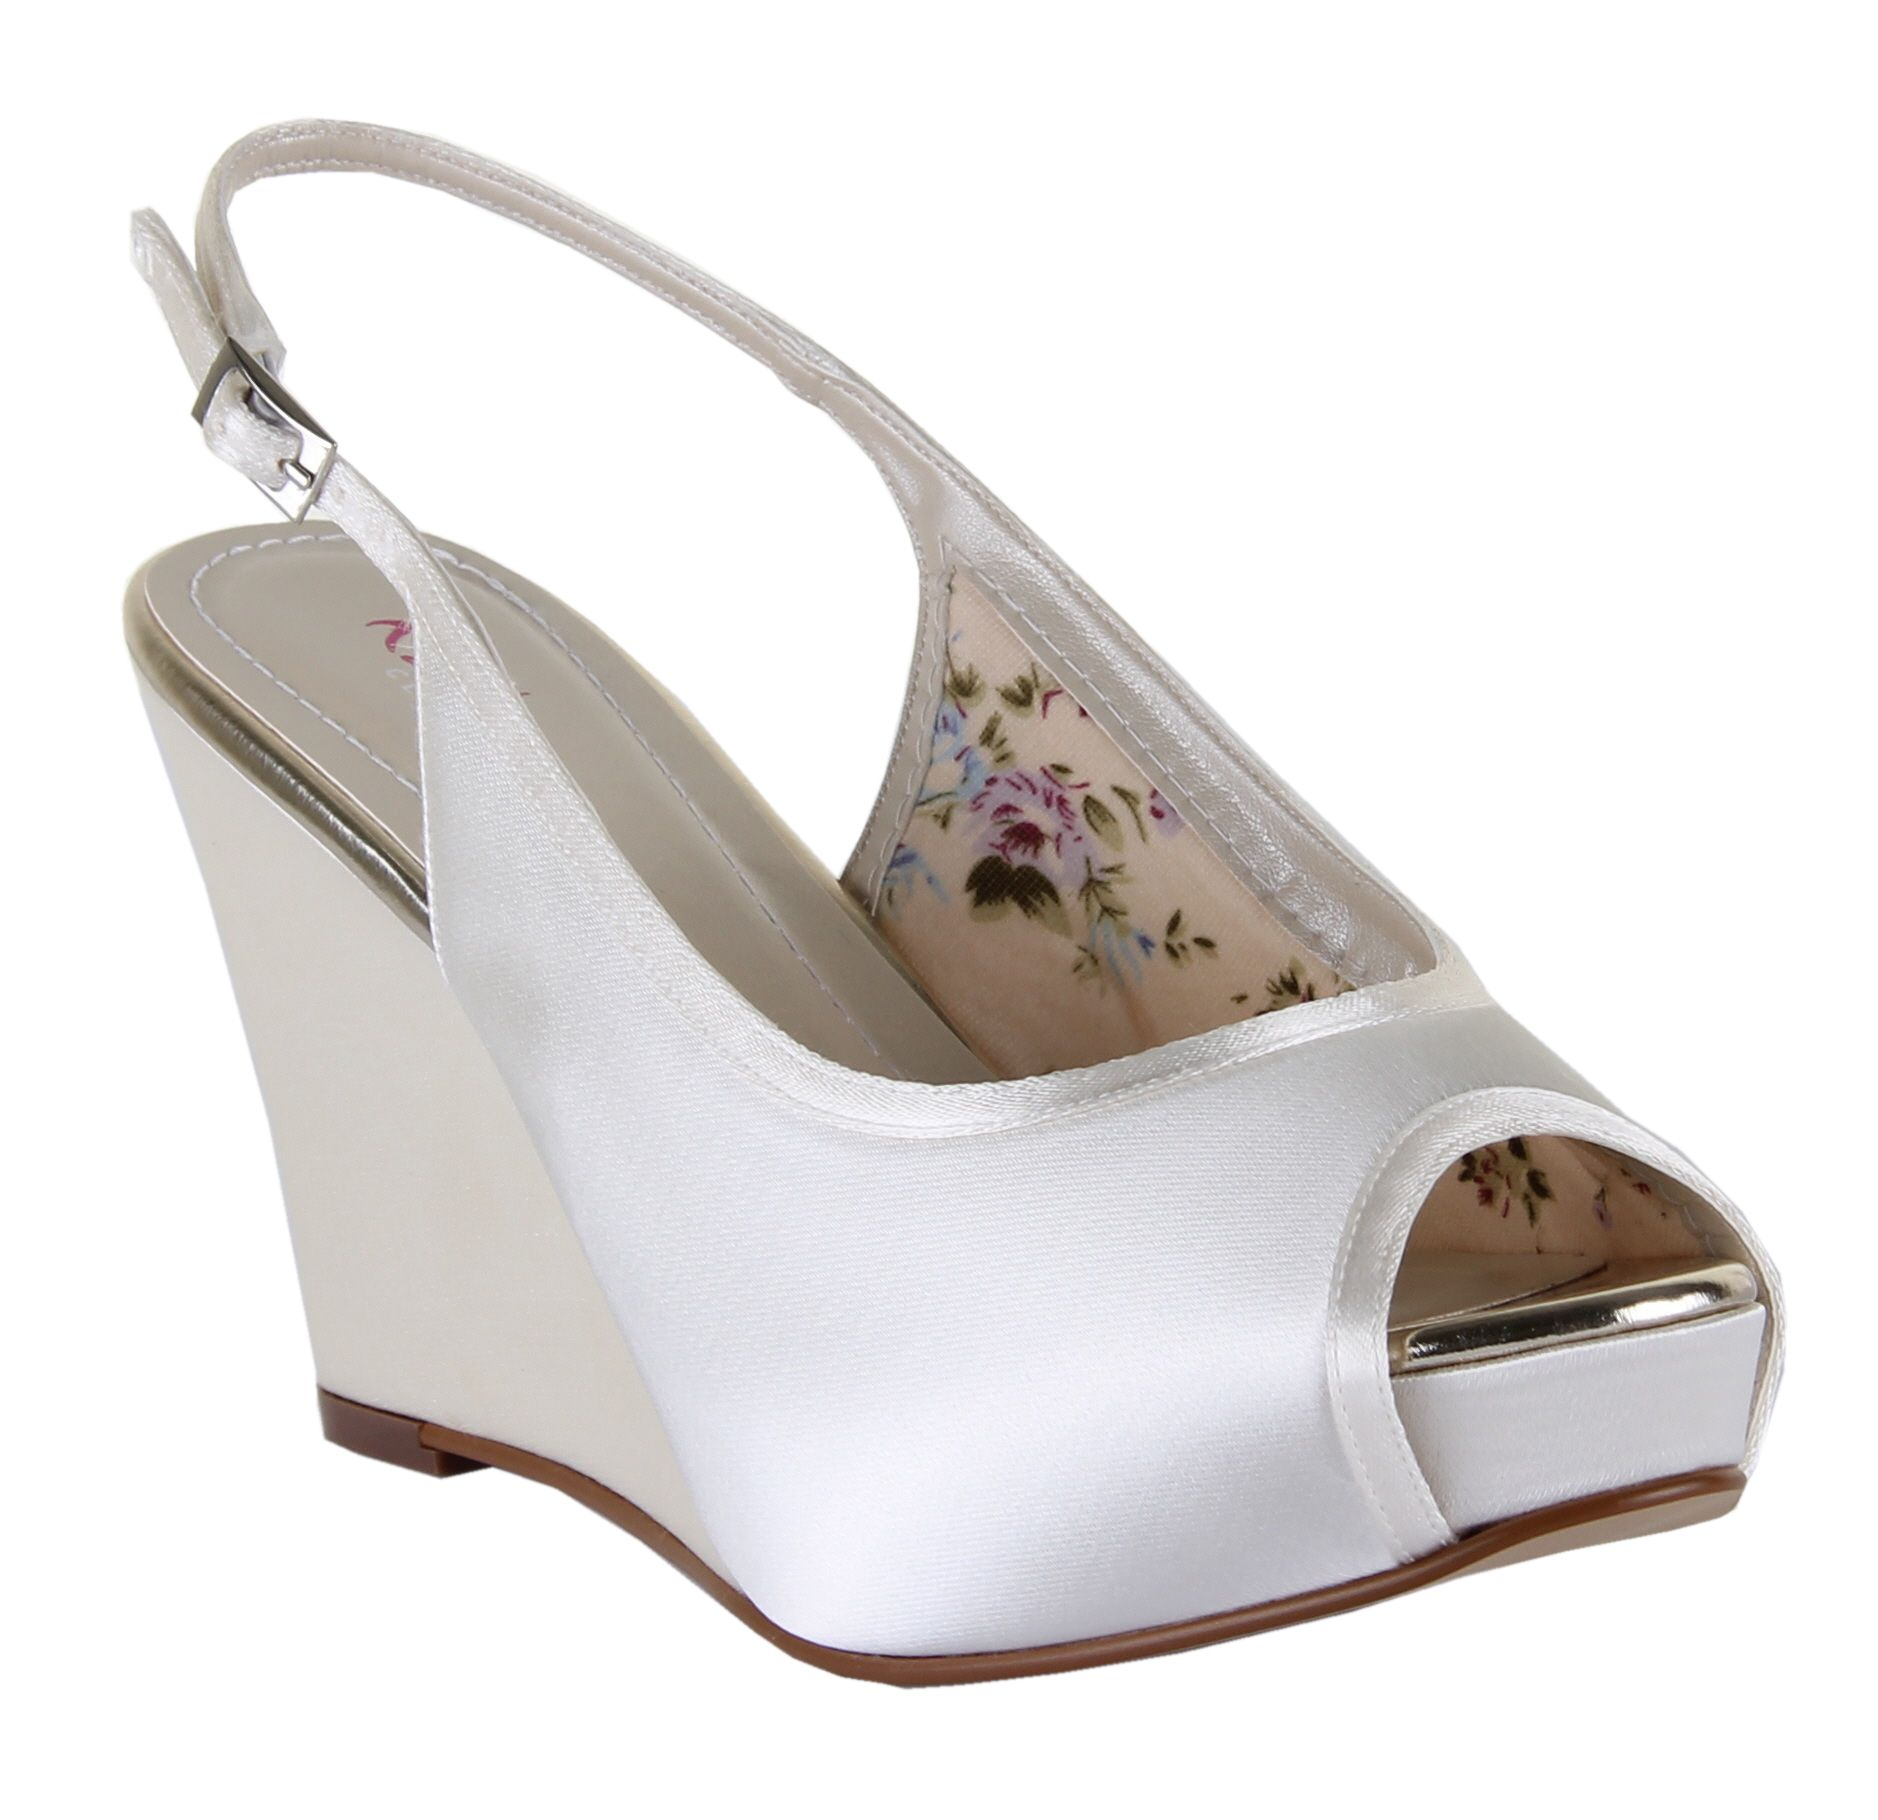 Vintage Style Wedding Shoes, Boots, Flats, Heels Rainbow Club Loretta platform wedge sling back shoes £48.75 AT vintagedancer.com